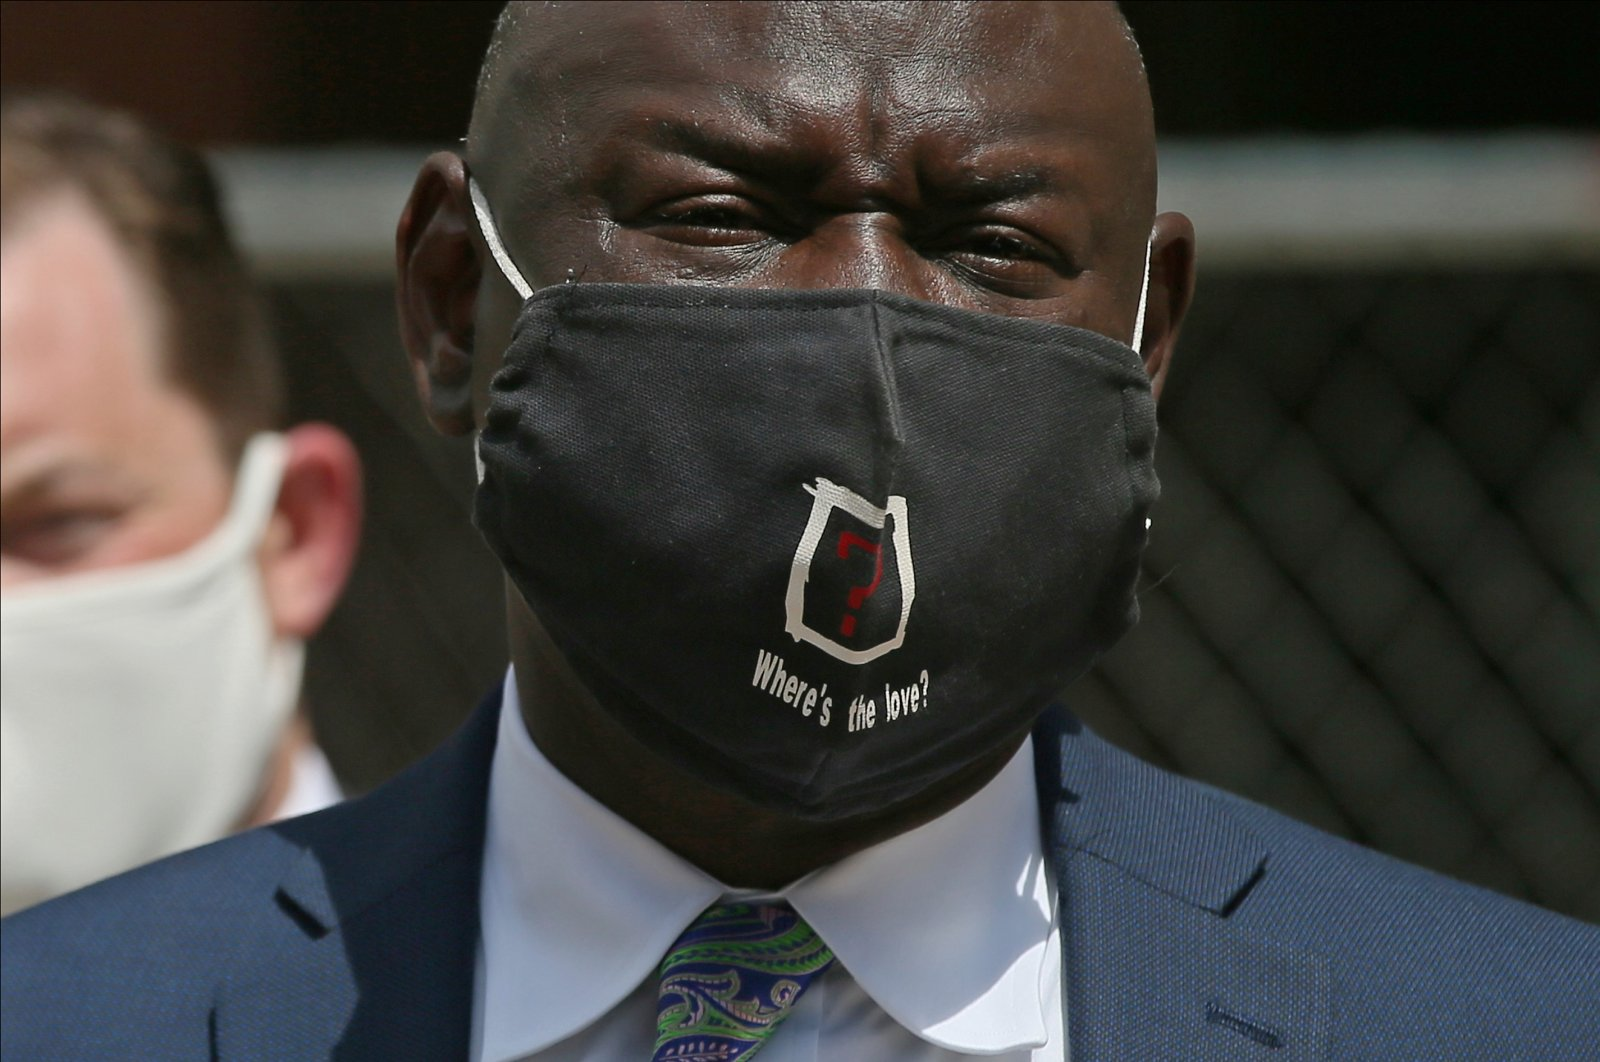 """Civil rights attorney Ben Crump wears a face mask with the words """"Where's the love?"""" after announcing the filing of a civil lawsuit against the city of Minneapolis and the officers involved in the death of George Floyd, Minneapolis, Minnesota, U.S., July 15, 2020. (AP Photo)"""